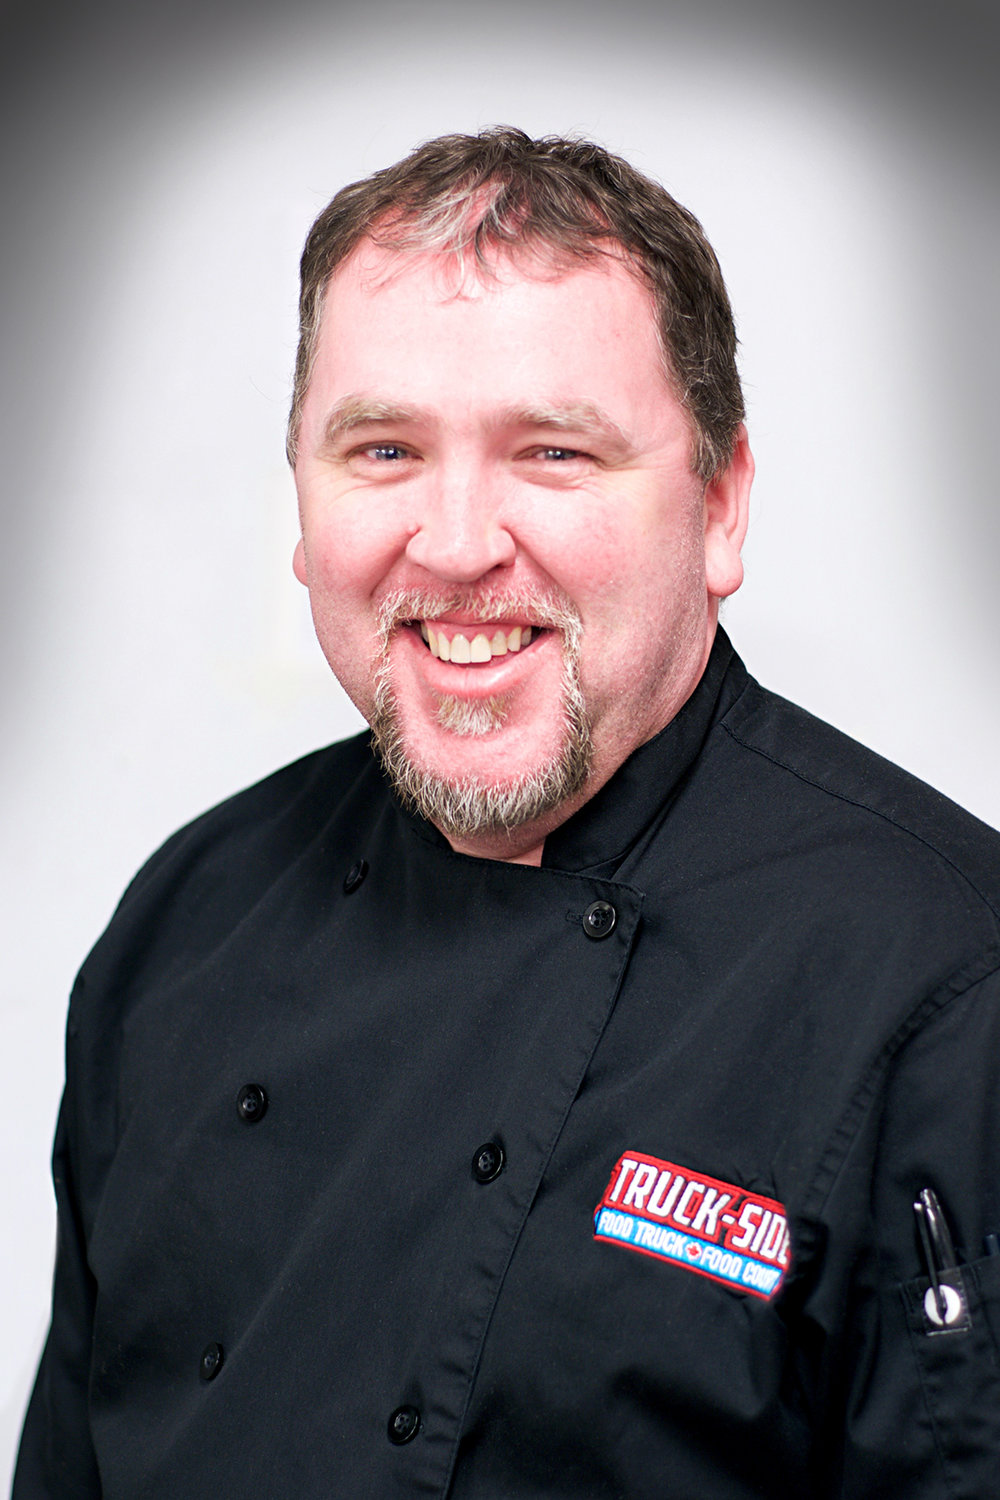 Executive Chef Ronnie Lace